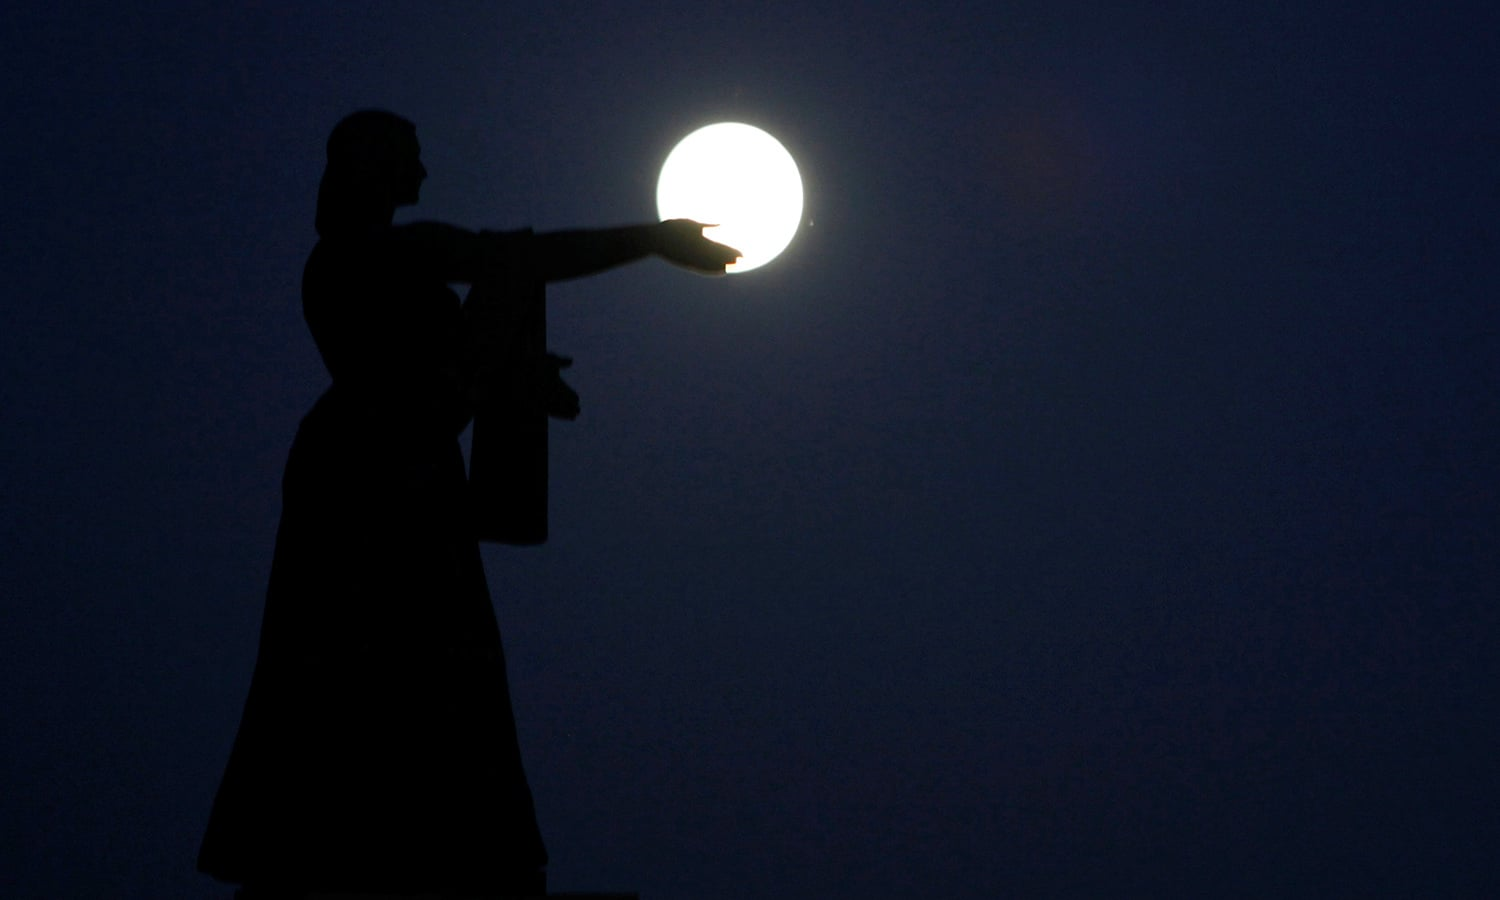 The supermoon, the closest the moon comes to Earth since 1948, rises over La Raza monument, in Ciudad Juarez, Mexico. ─Reuters